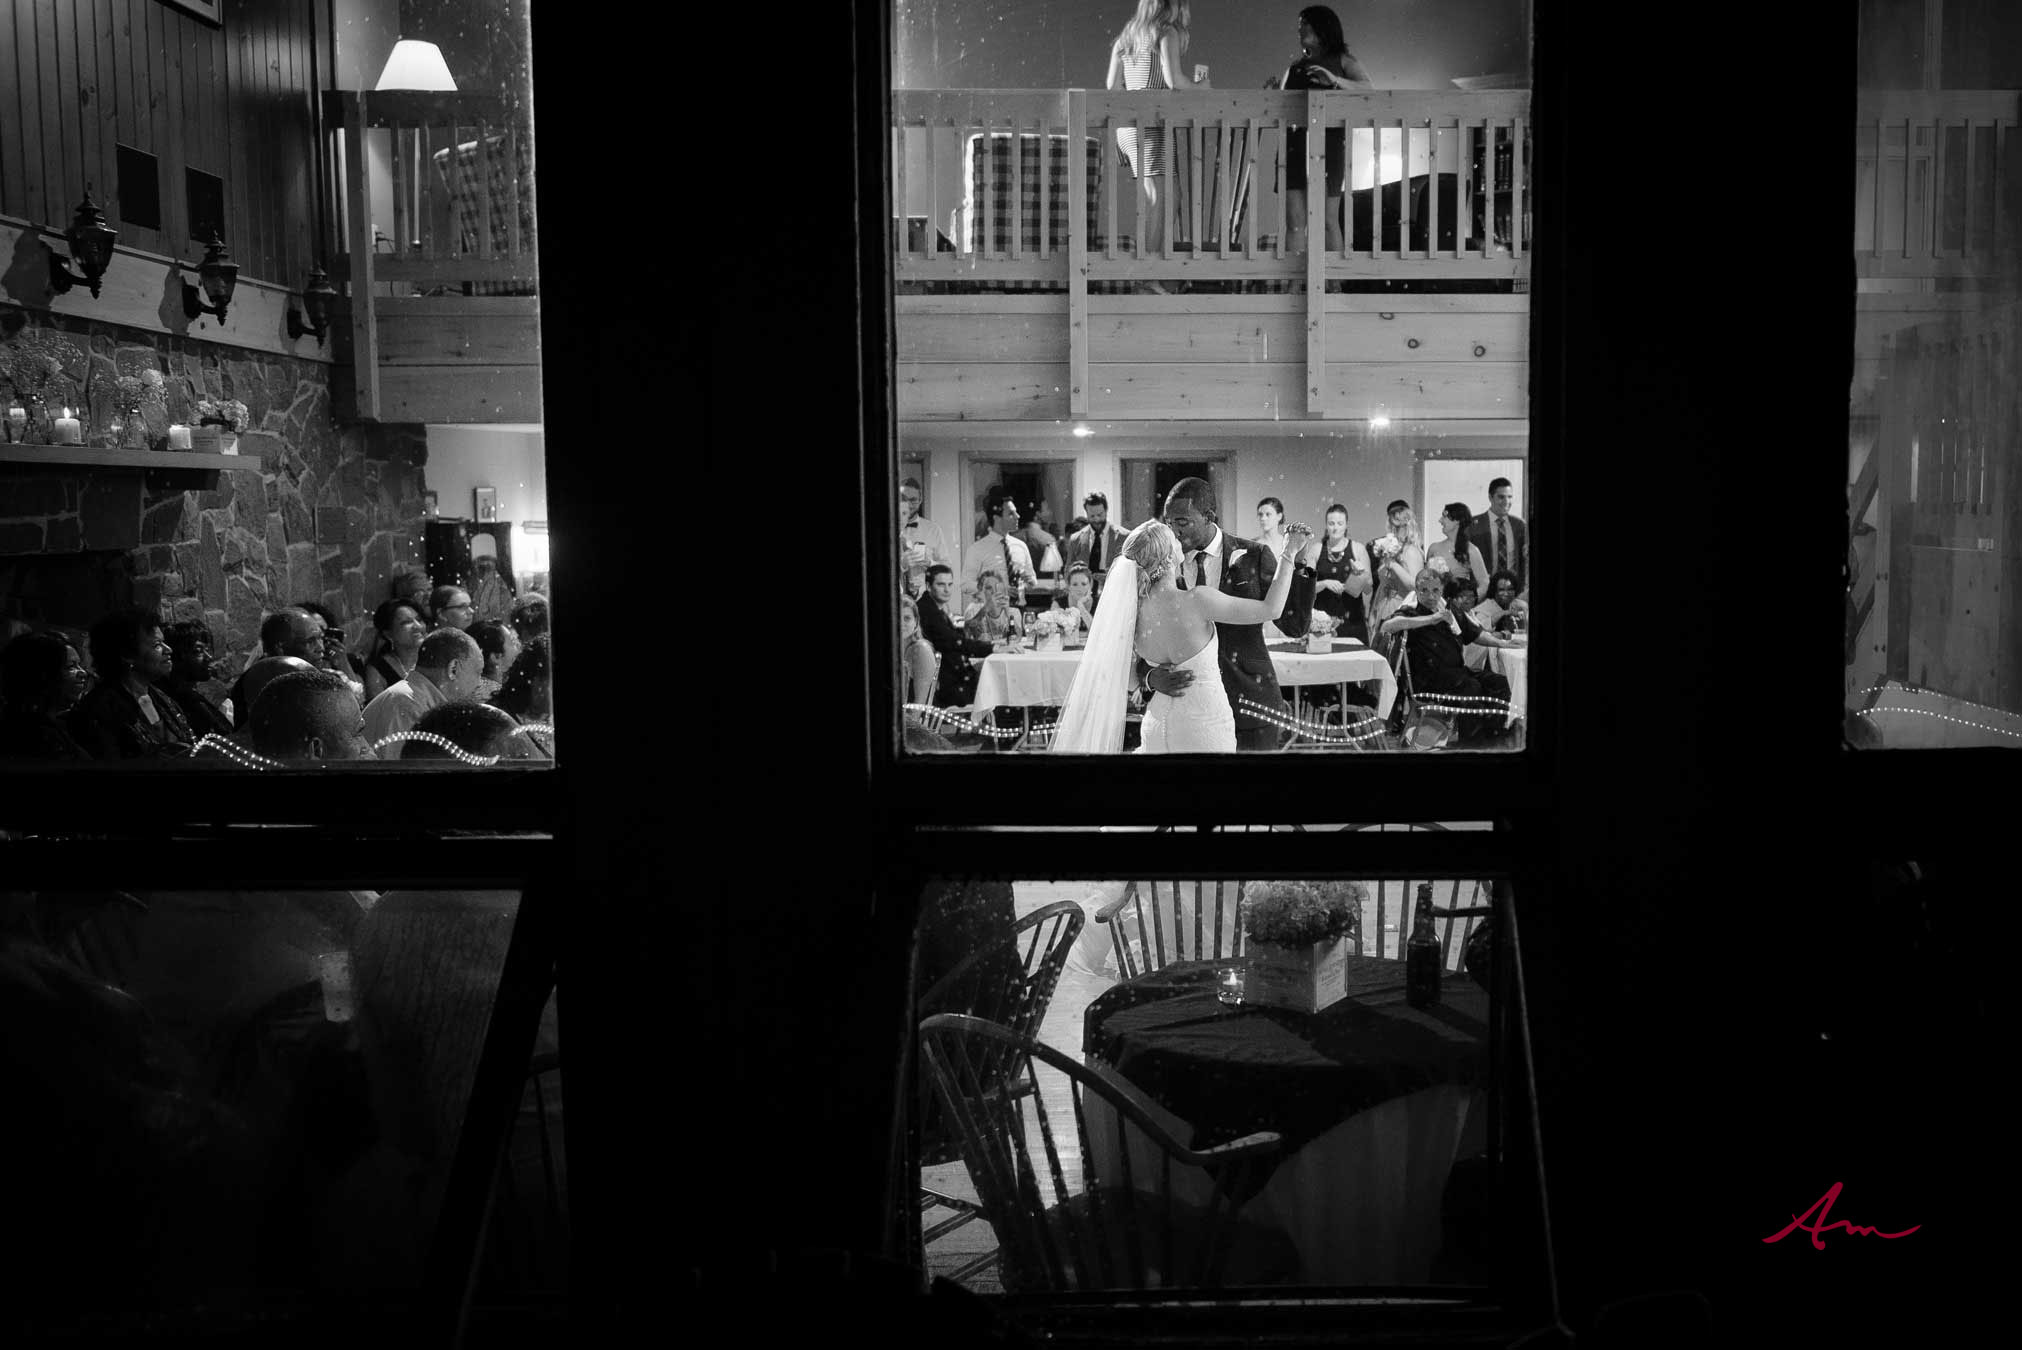 Liscombe-wedding-firstdance.jpg